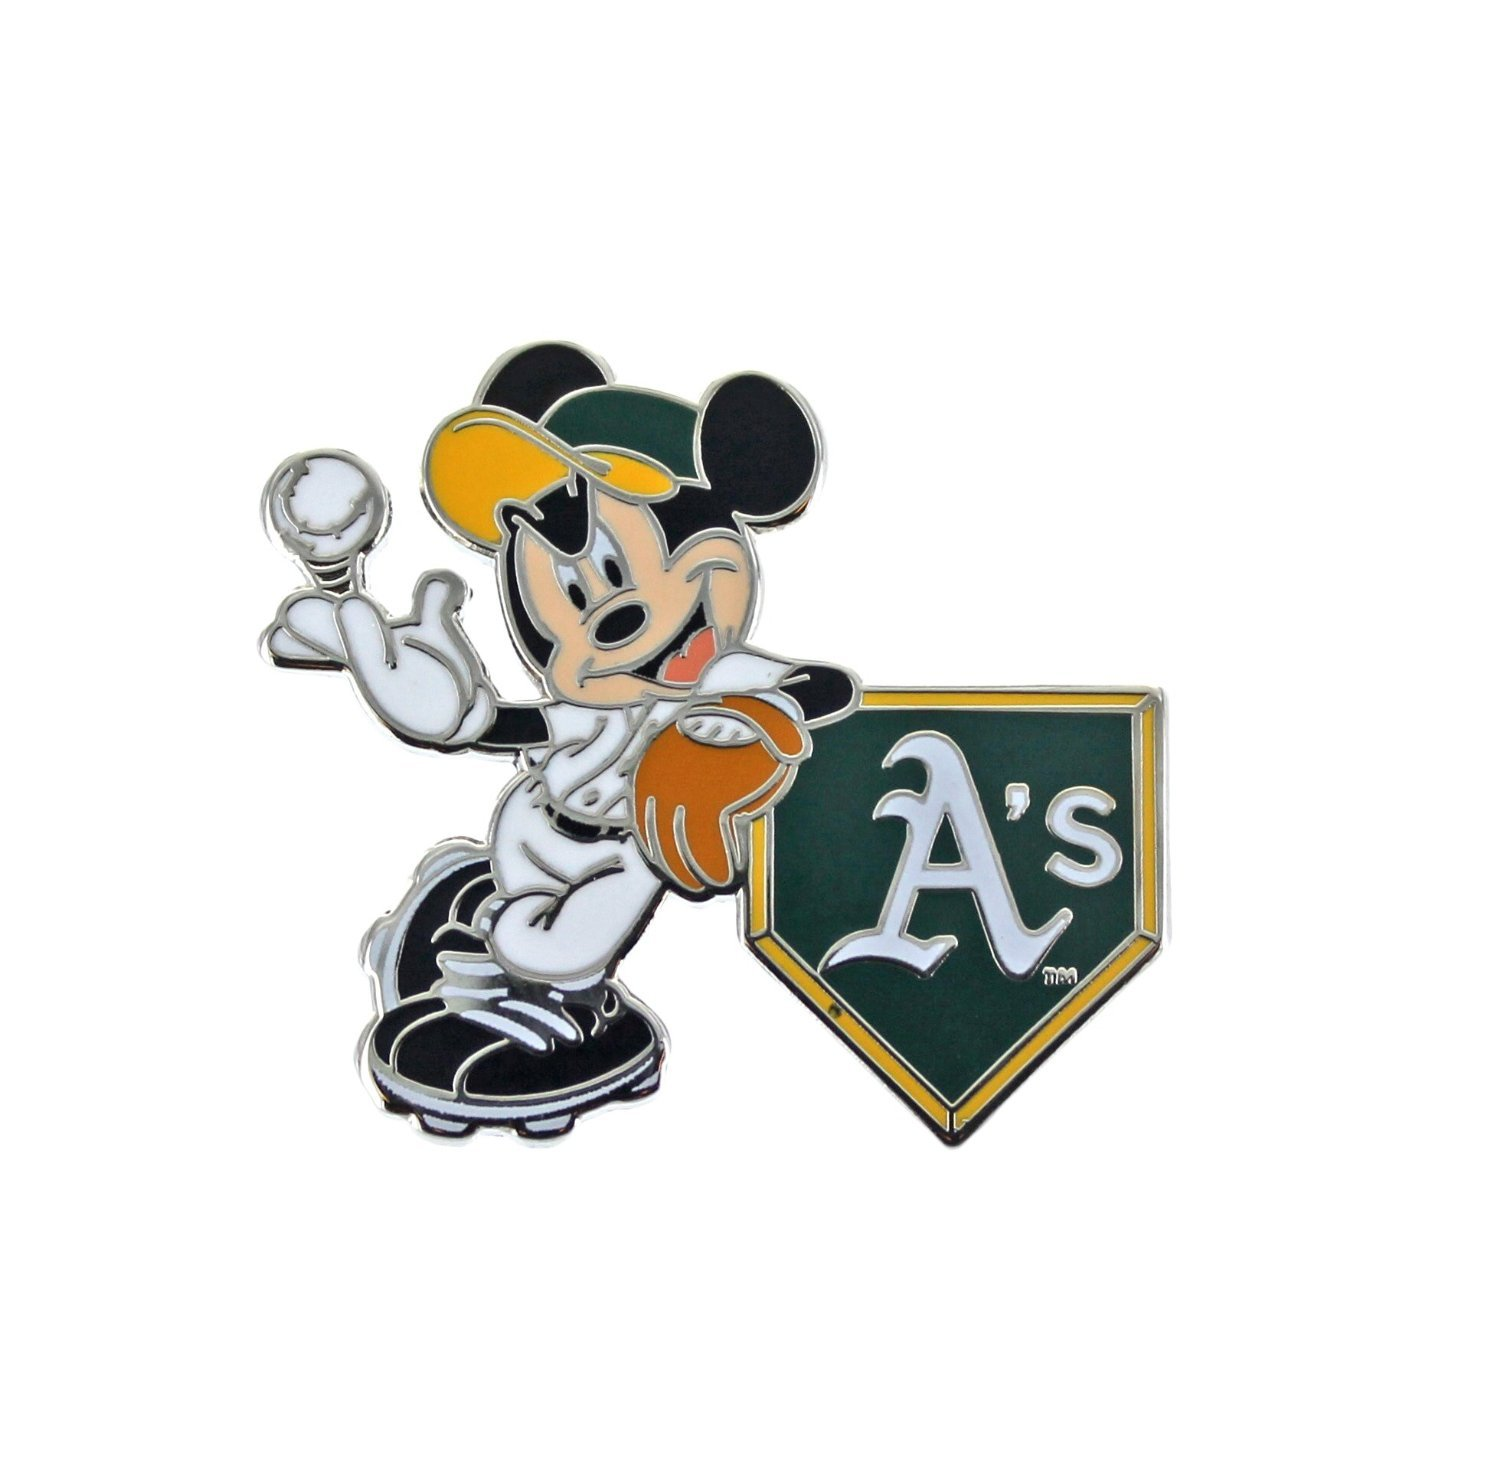 OAKLAND ATHLETICS mlb baseball 83 wallpaper 1500x1464 319160 1500x1464